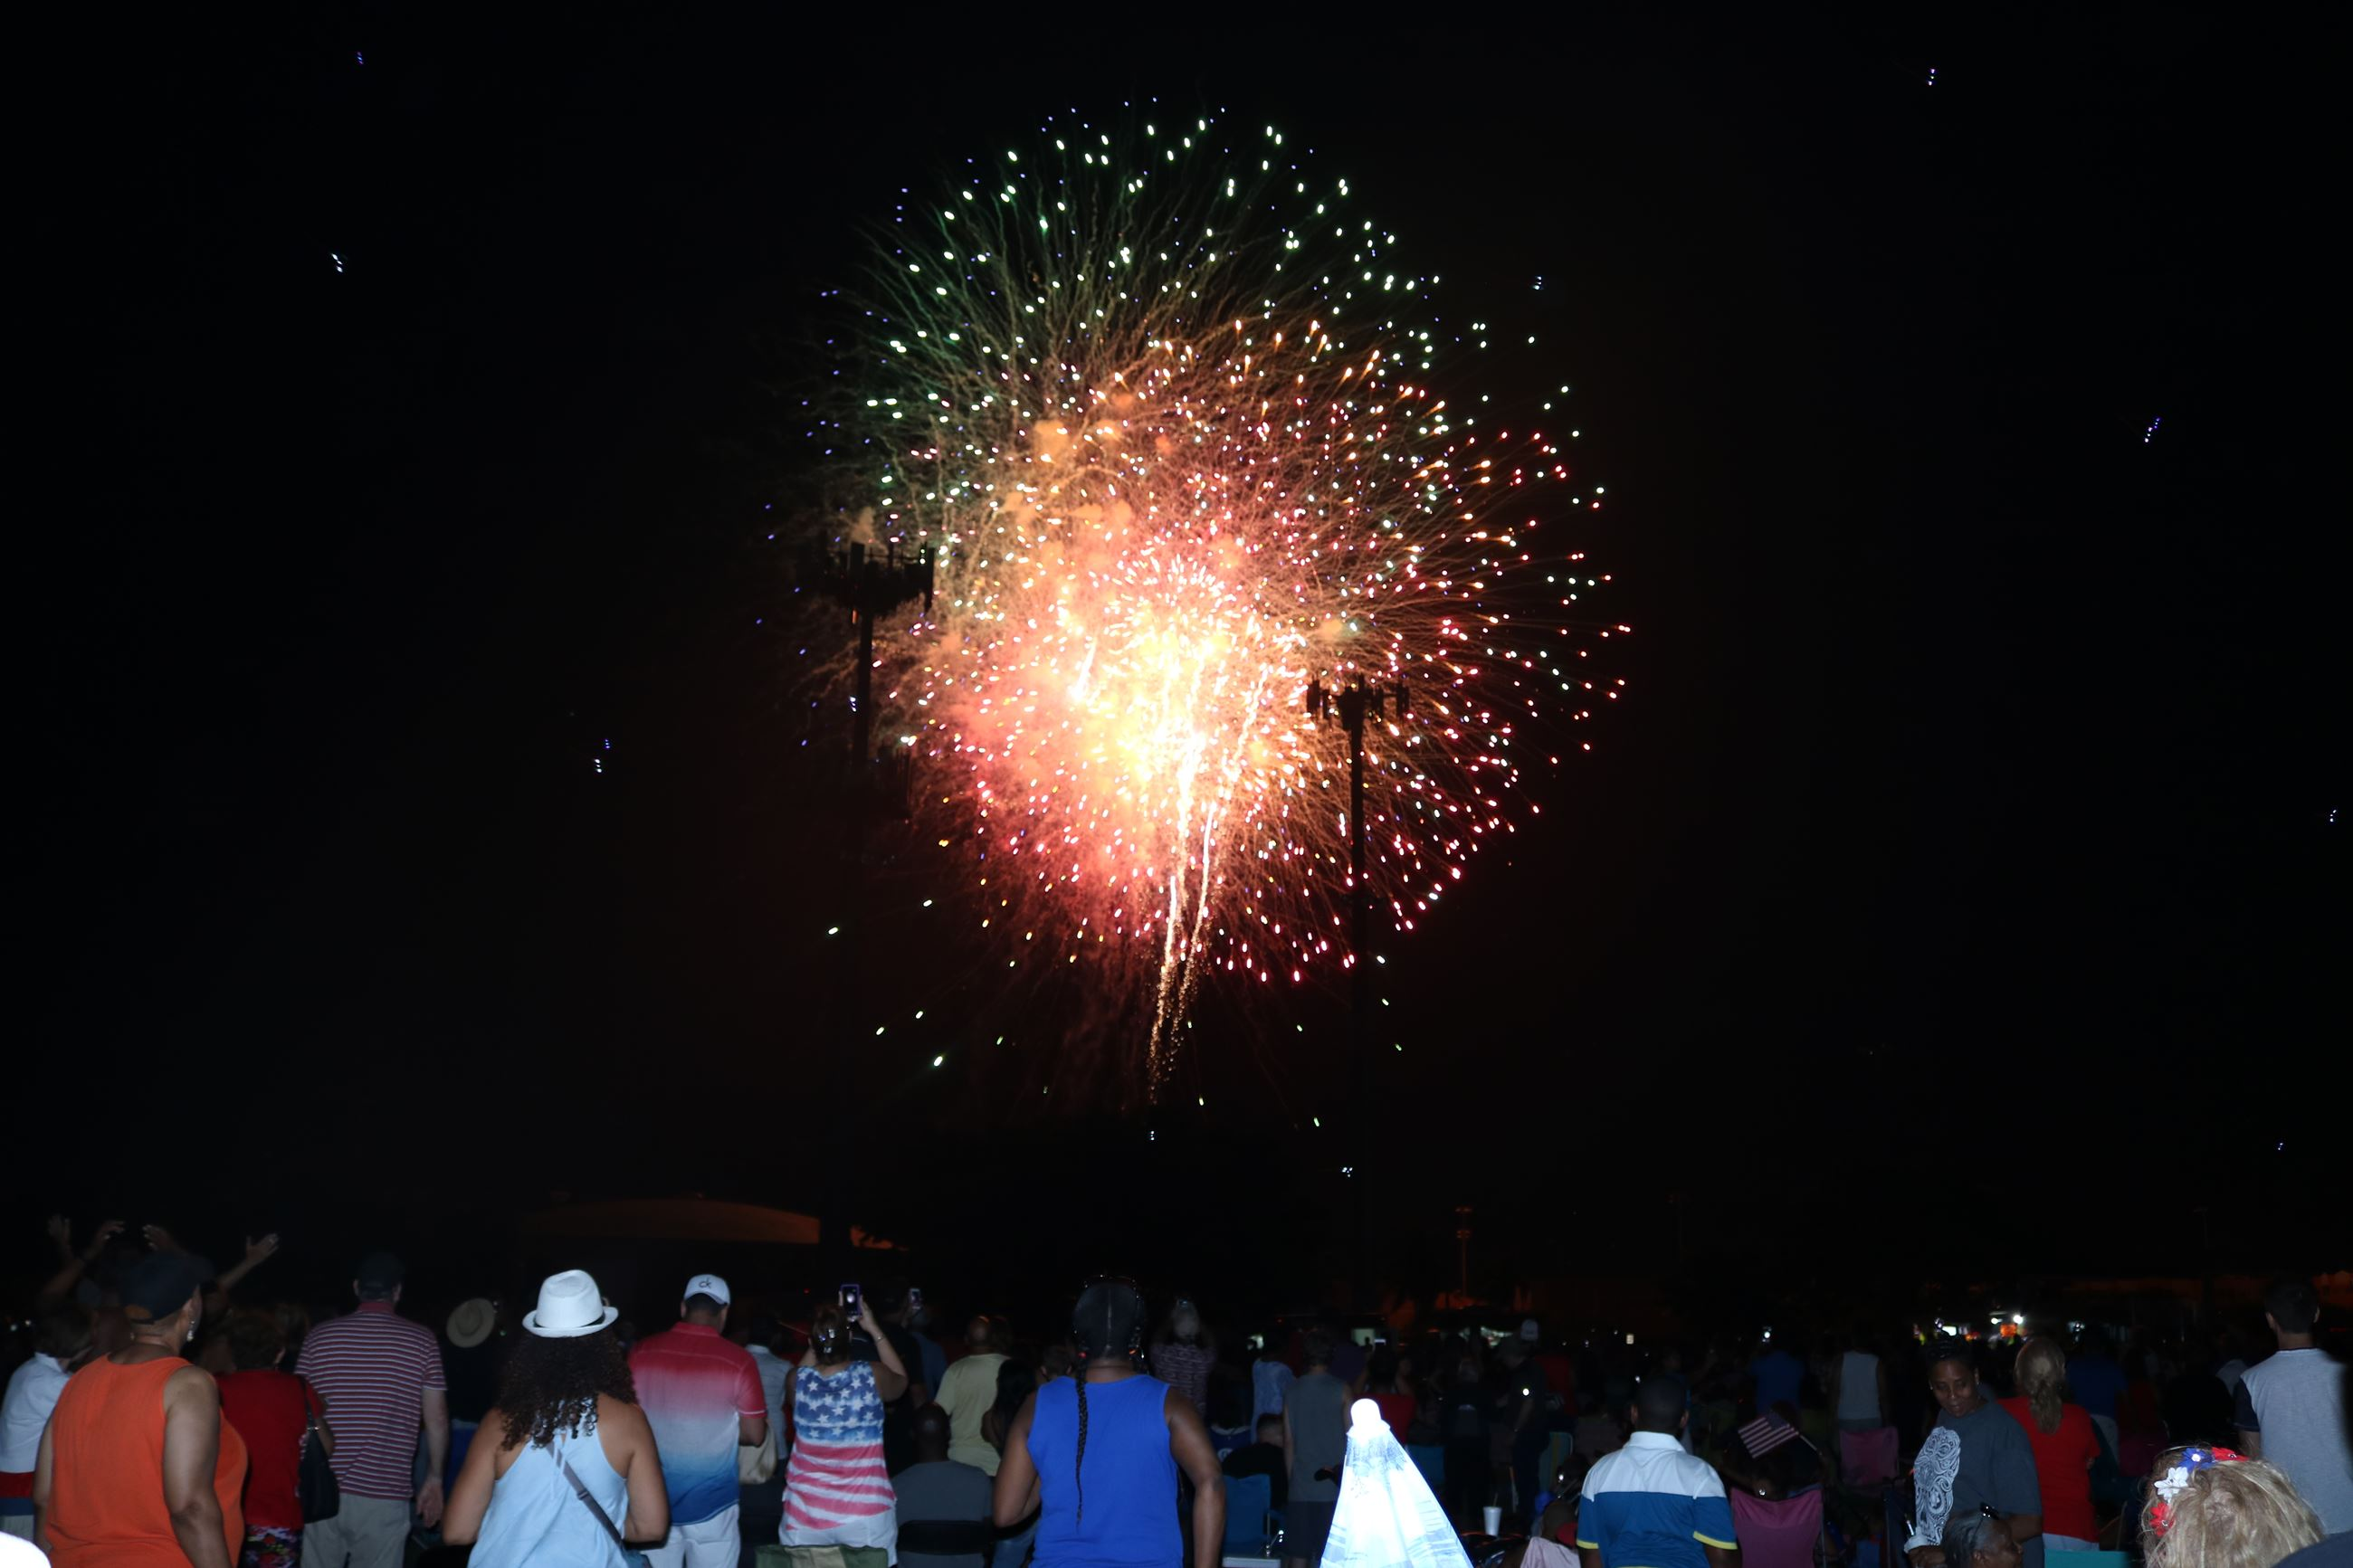 Crowd enjoys the fireworks display at July 4th event.